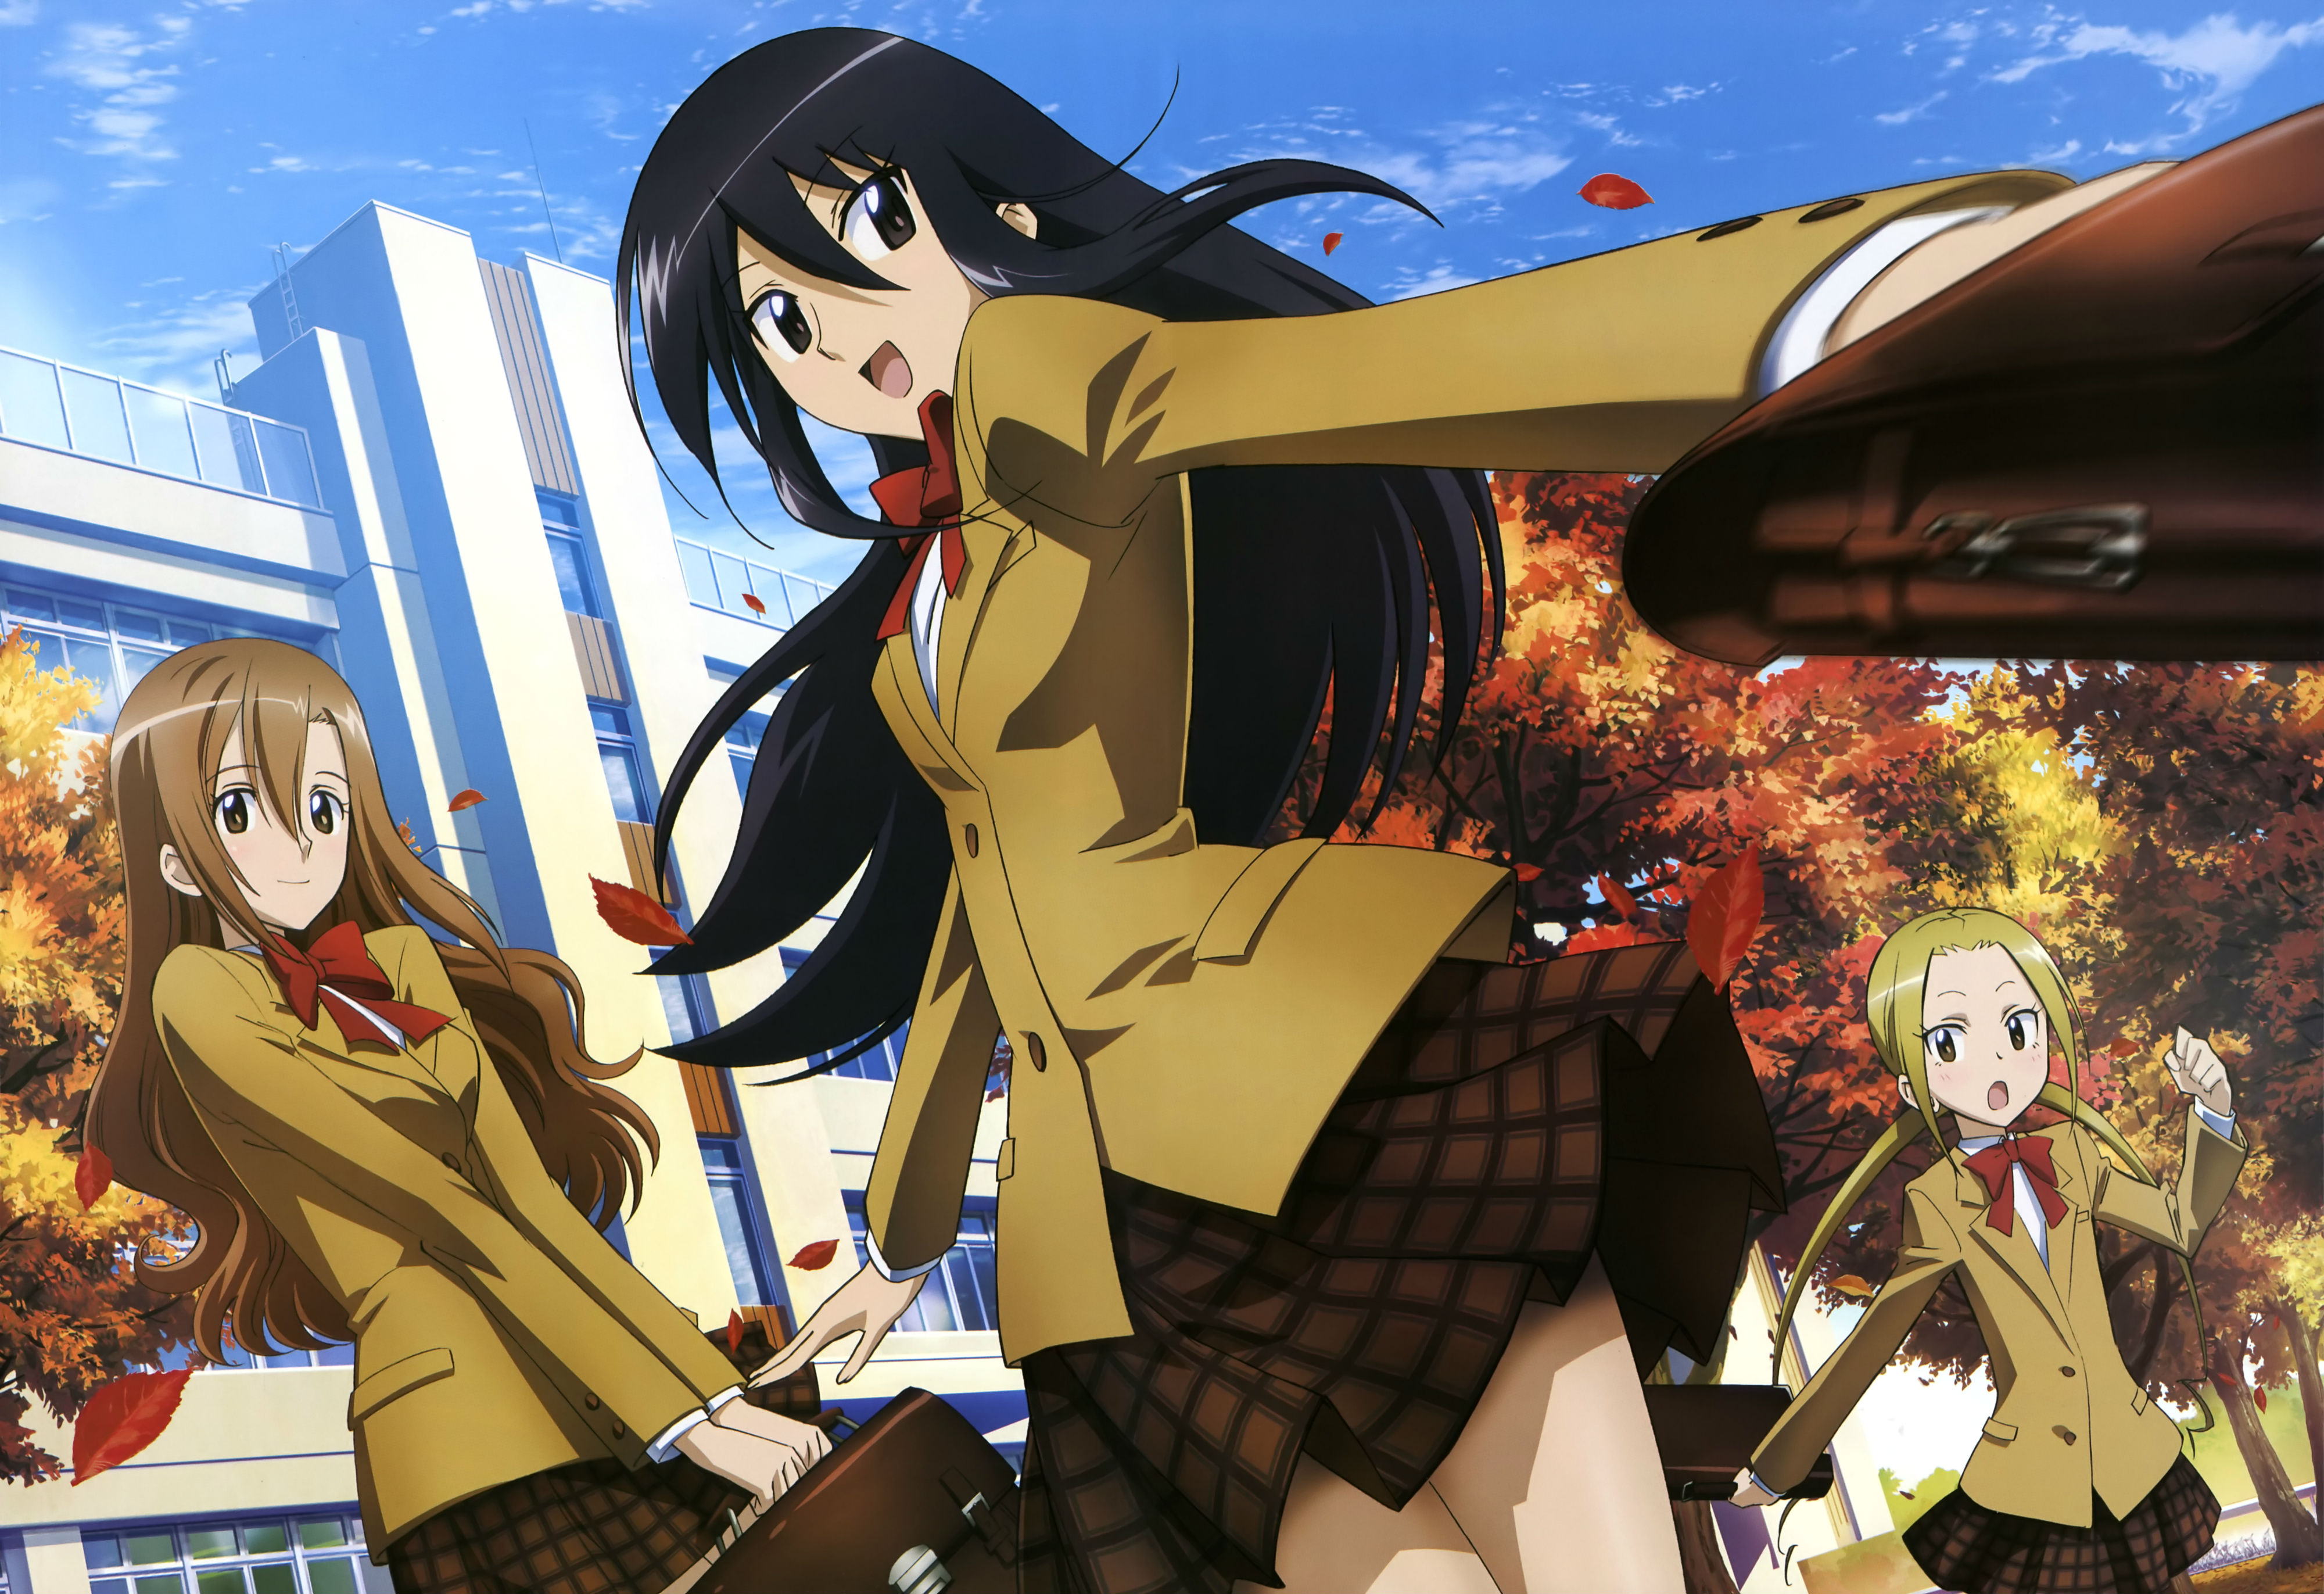 4 Seitokai Yakuindomo HD Wallpapers | Backgrounds - Wallpaper Abyss